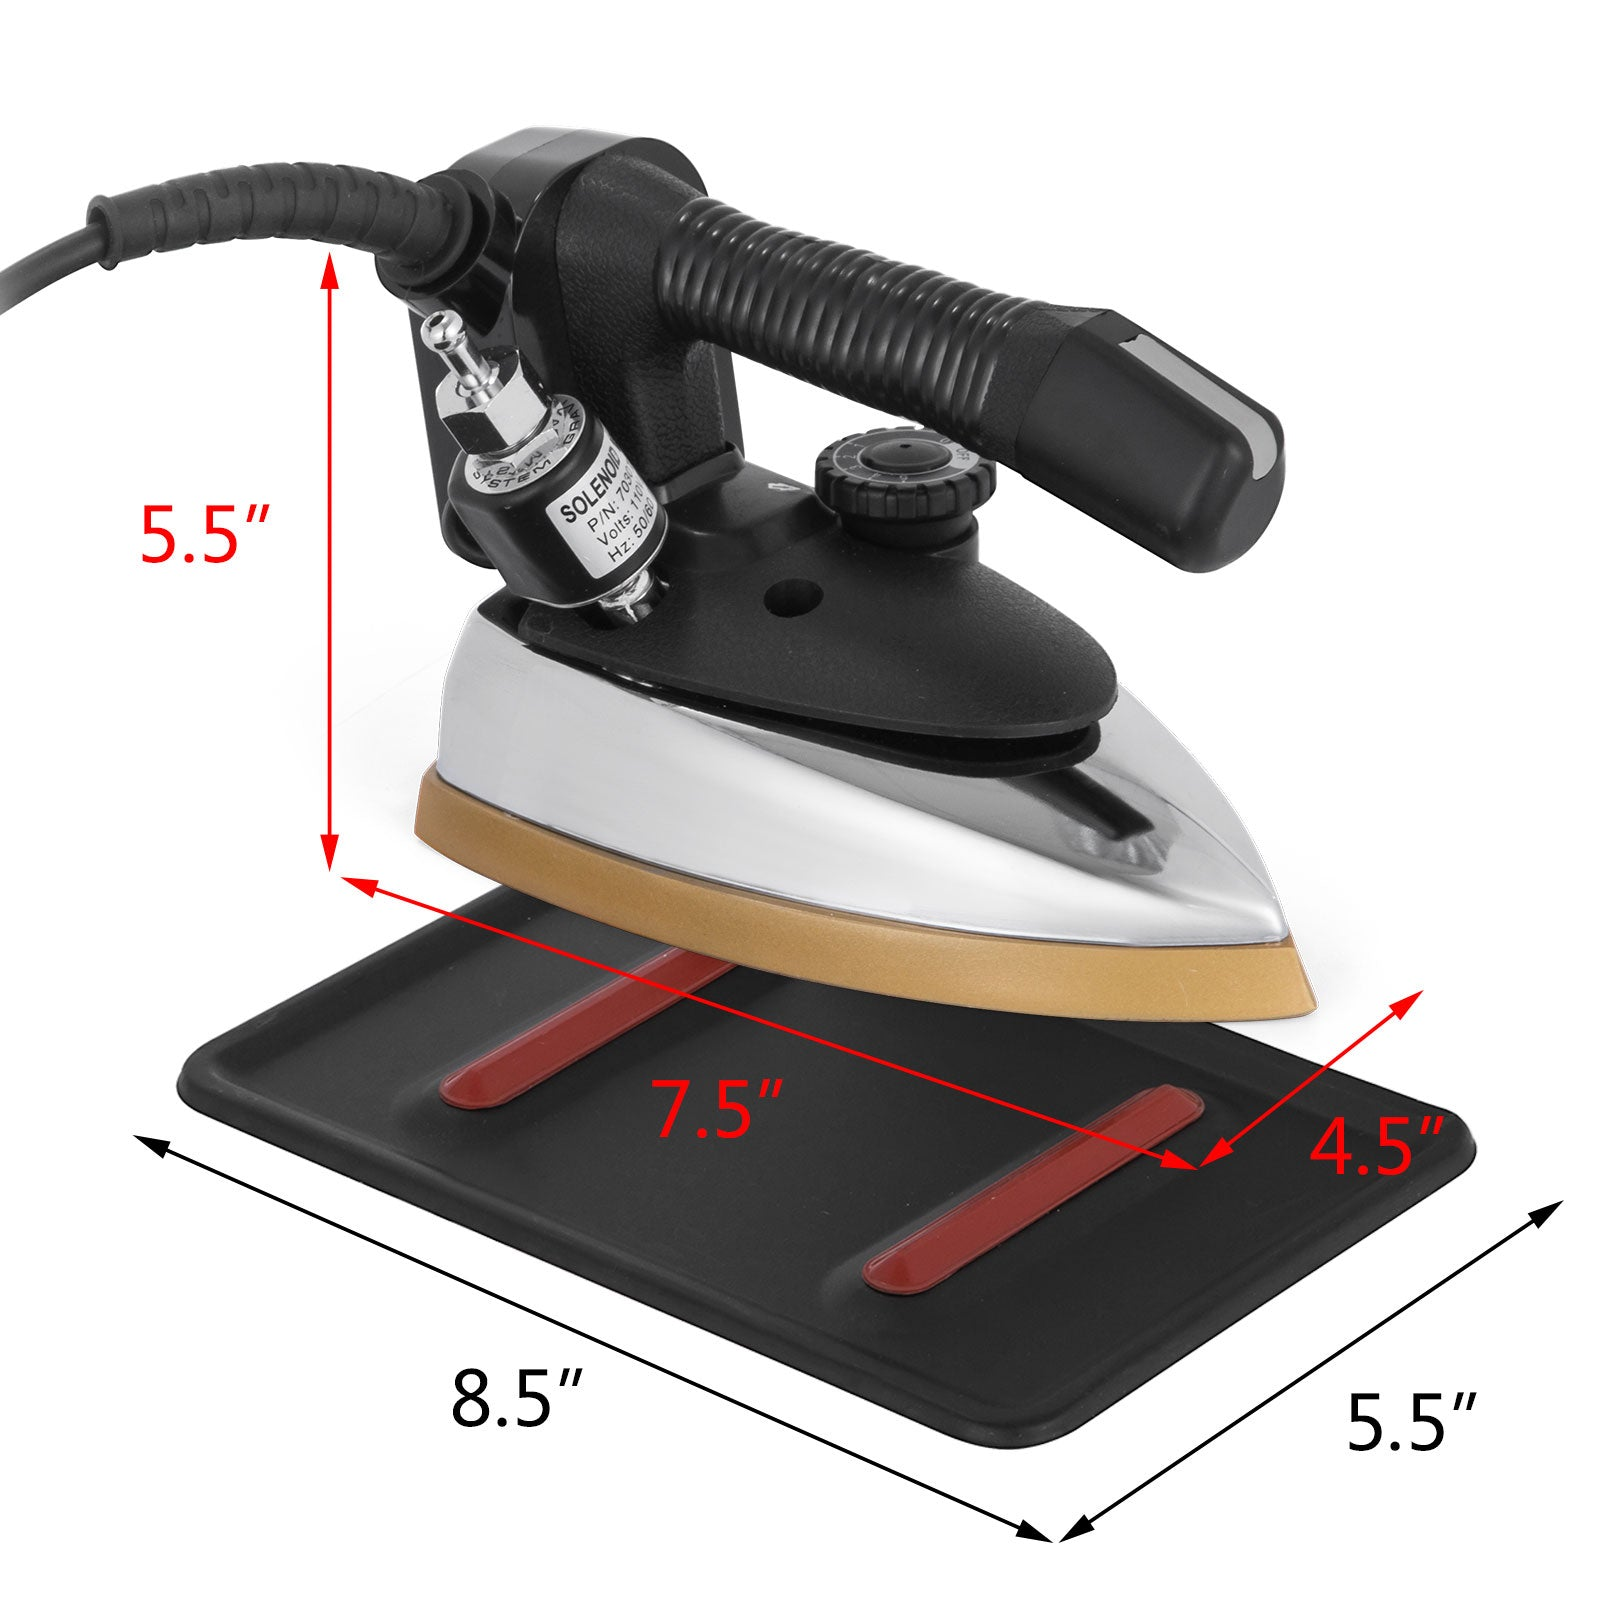 Gravity Feed Electric Steam Iron Sleek Design Fast Running Fast Thermal Conduct